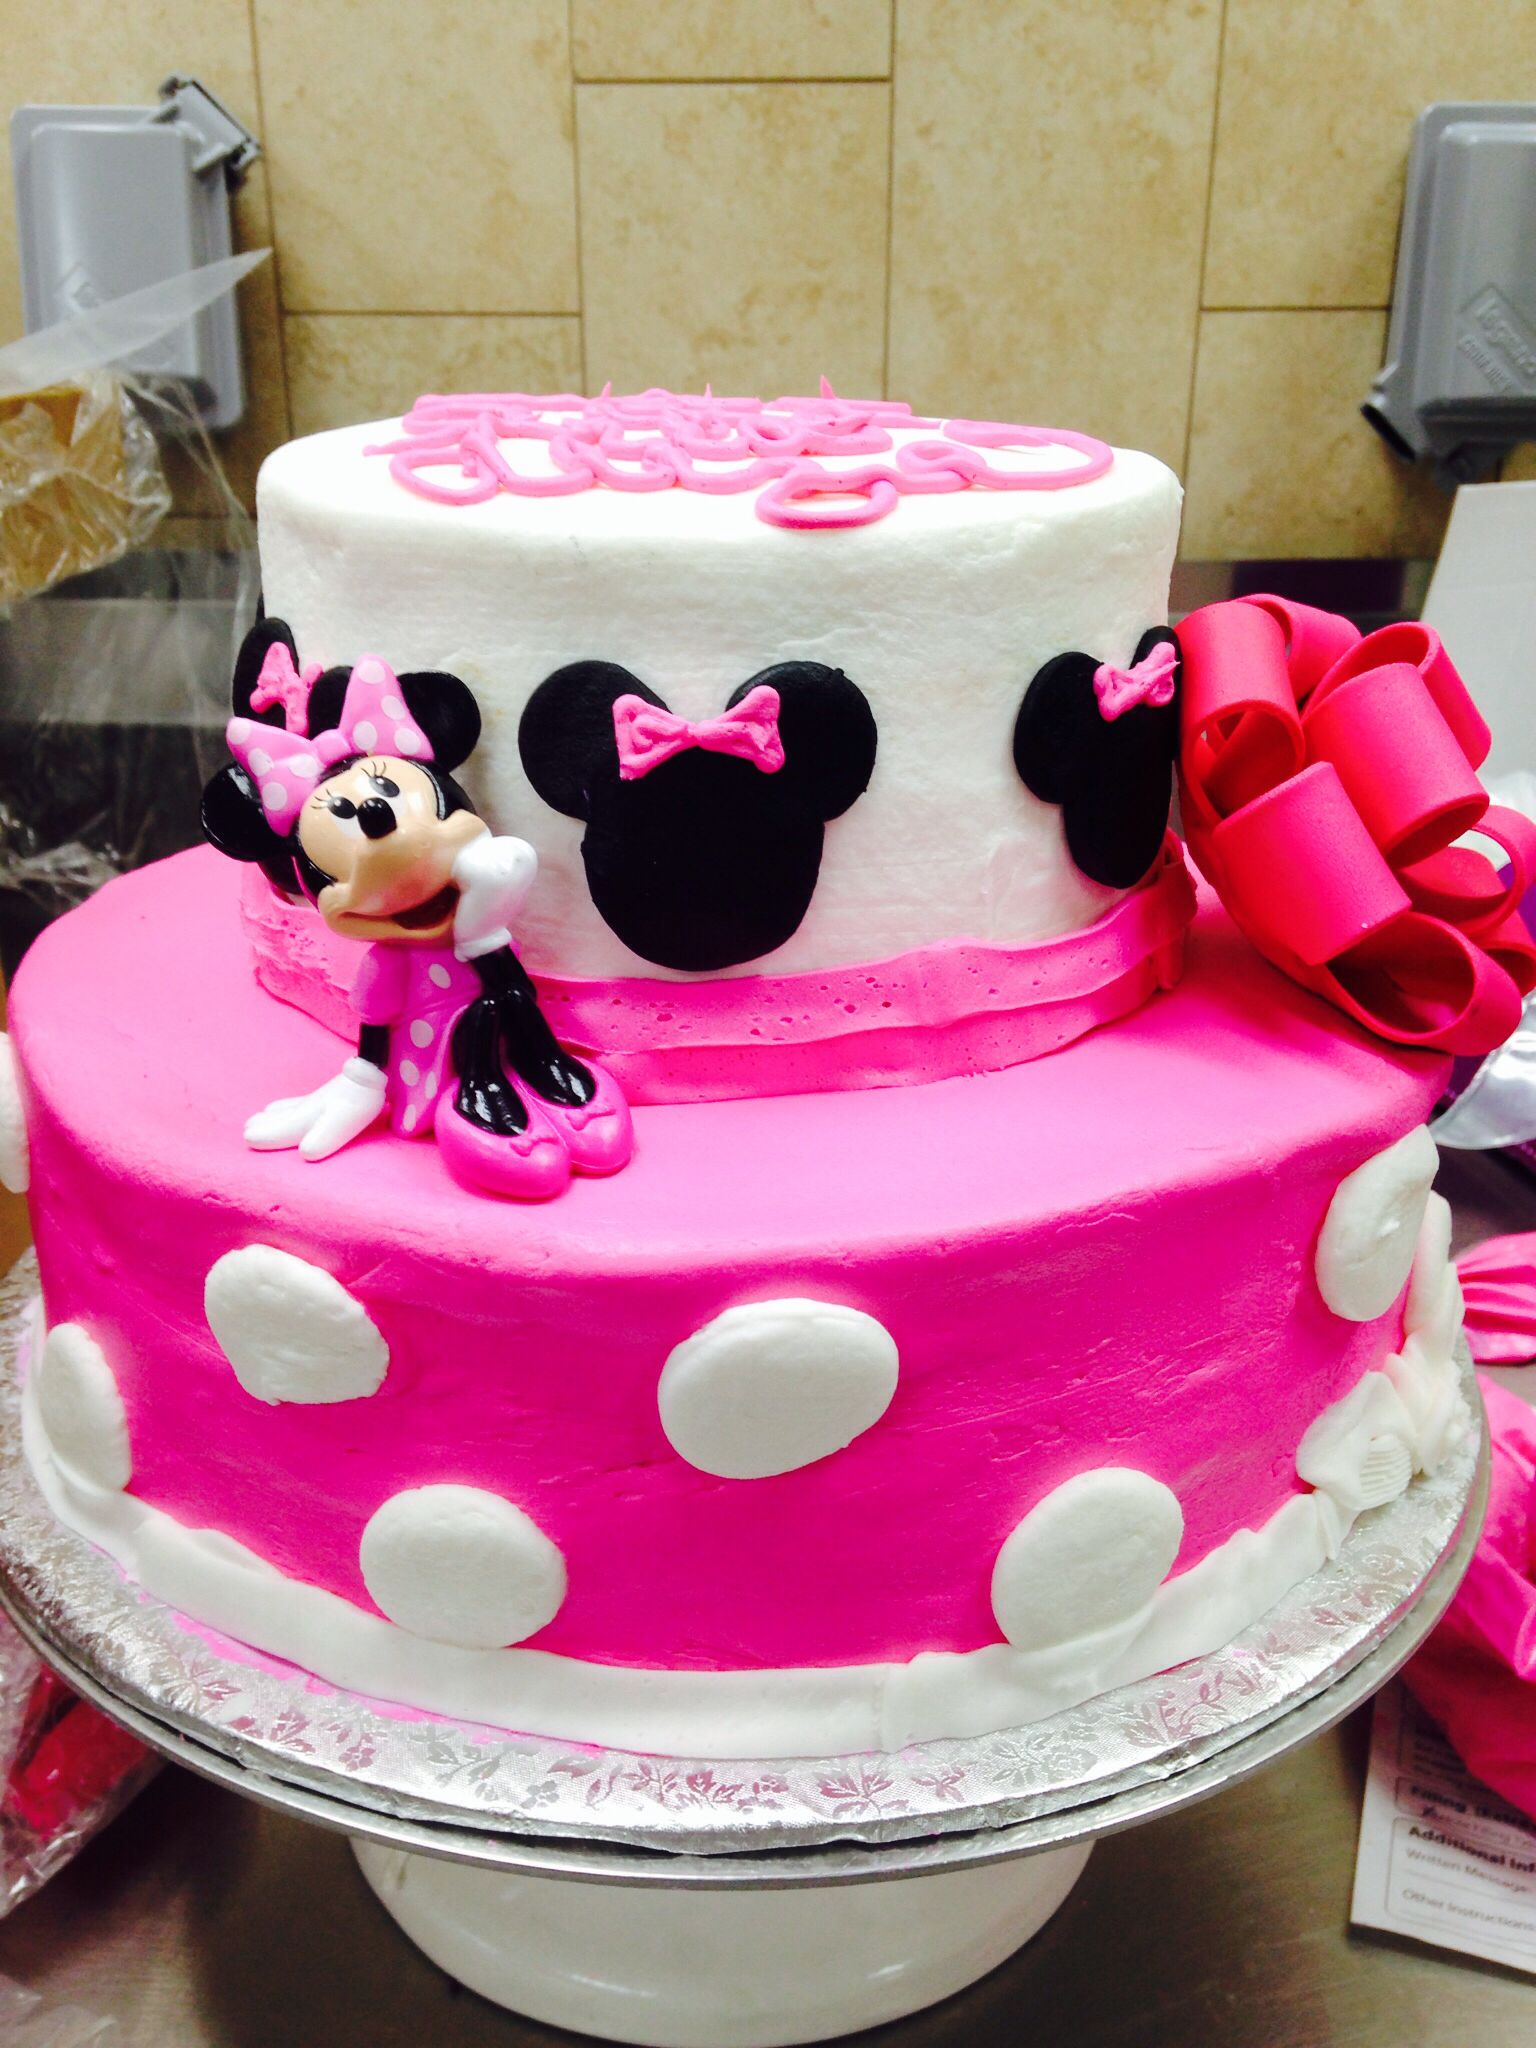 Image From Https S Media Cache Ak0 Pinimg Com Originals C0 Db 5f C0db5f3719e68c40c3227806b79c052b Walmart Birthday Cakes Custom Birthday Cakes Walmart Cakes